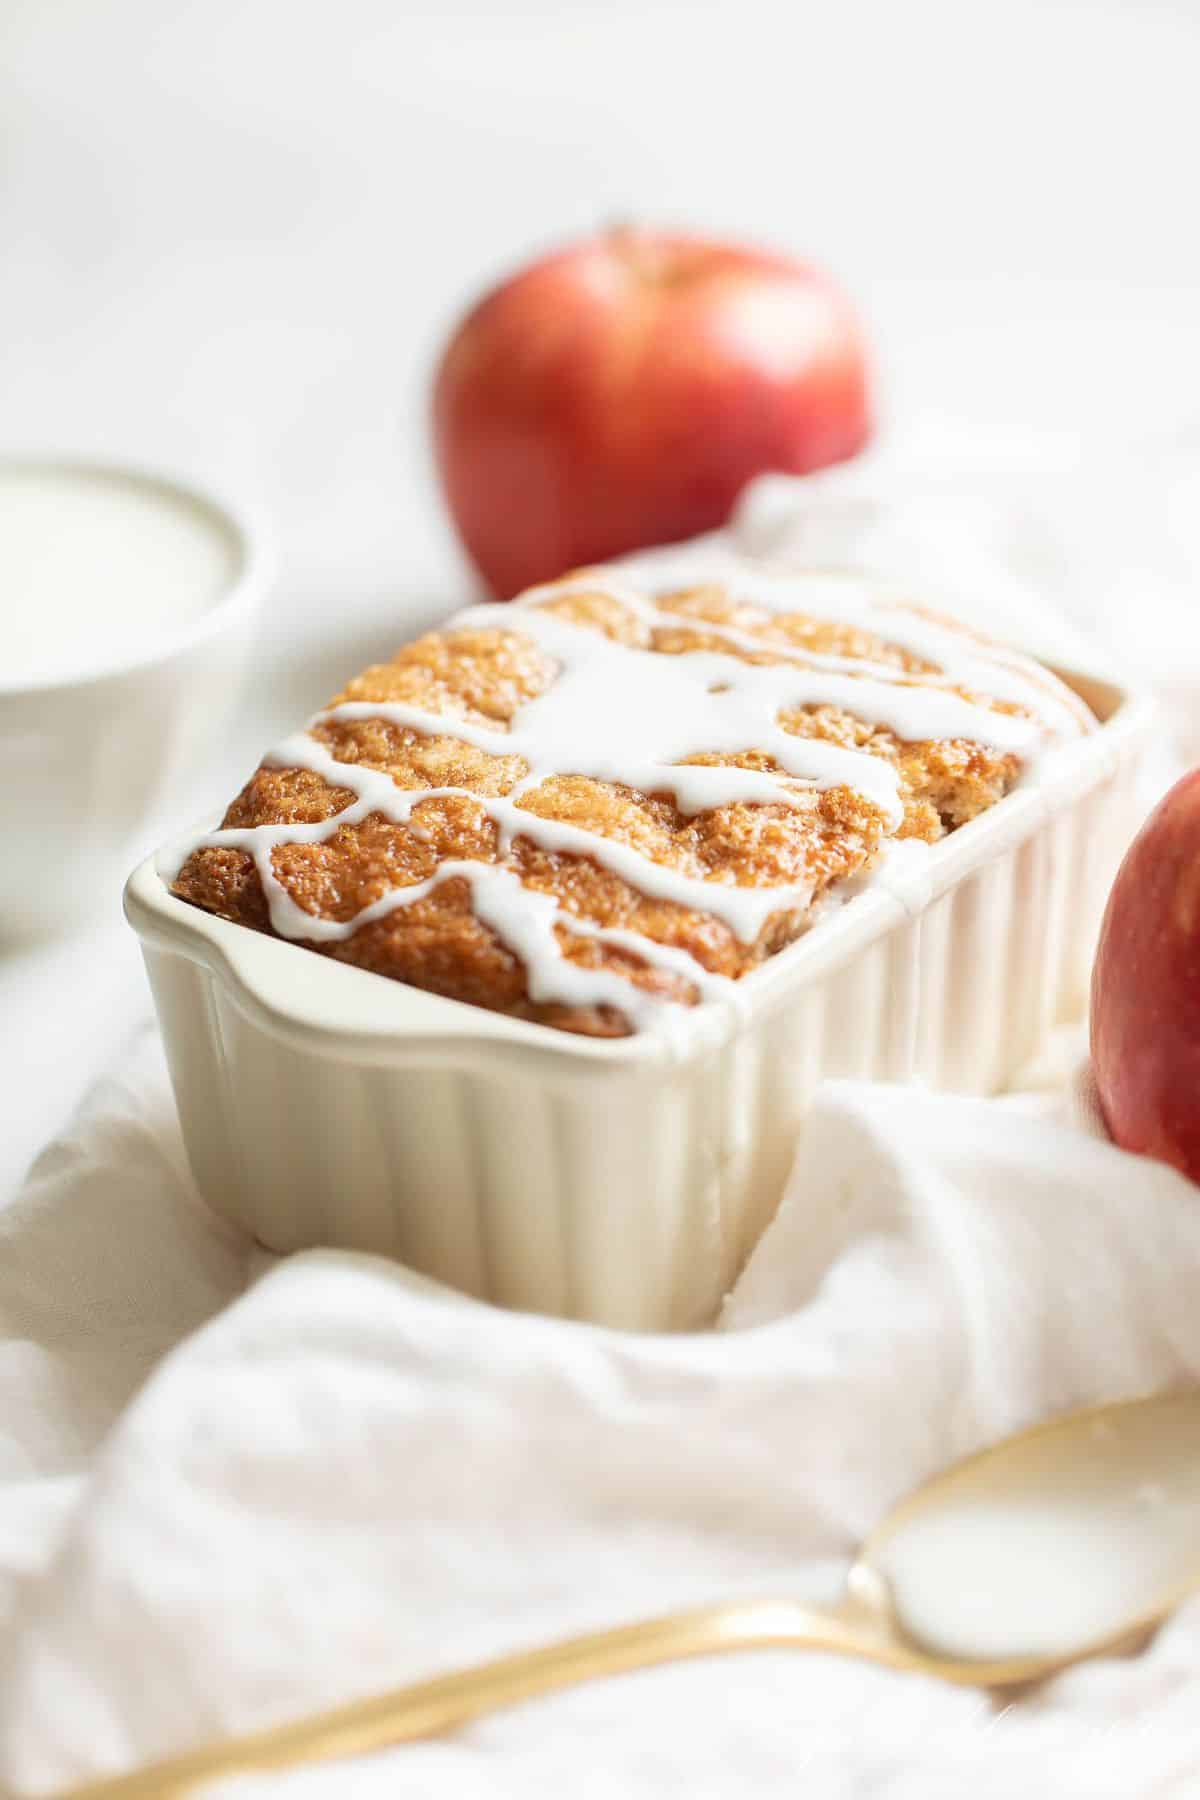 White ceramic loaf pan on a white fabric backdrop, filled with quick bread and drizzled with glaze. #applecinnamonbread #applebread #applecinnamonloaf